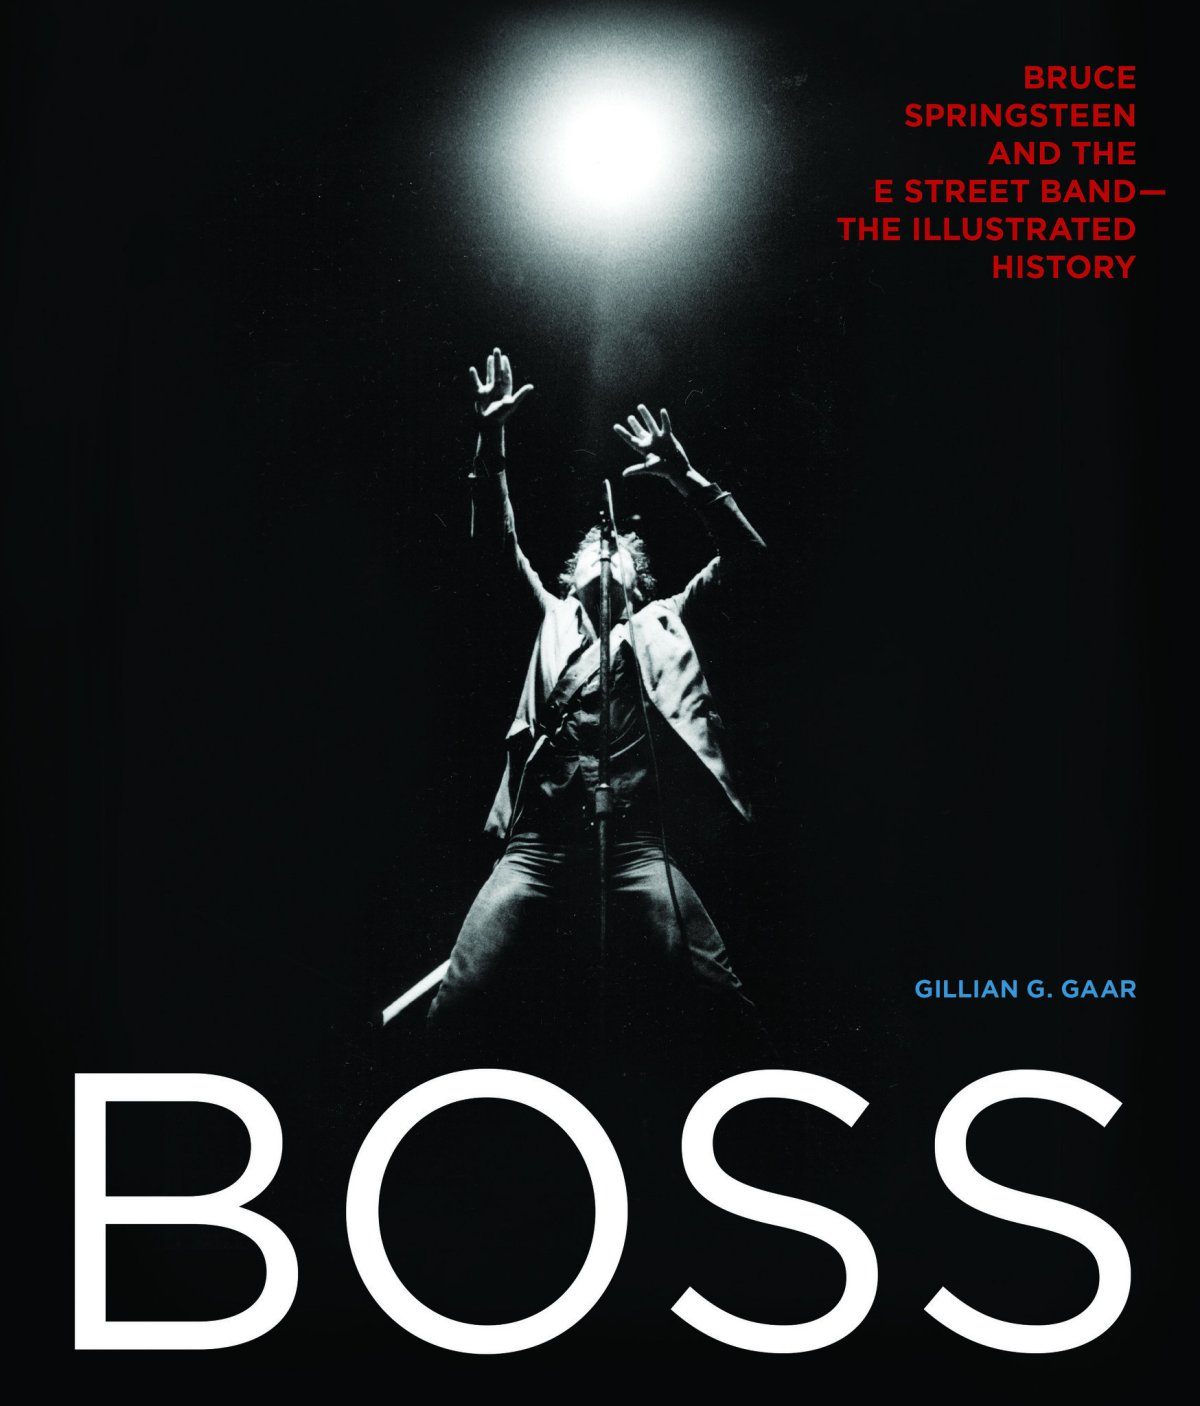 Boss: Bruce Springsteen and the E Street Band – The Illustrated History